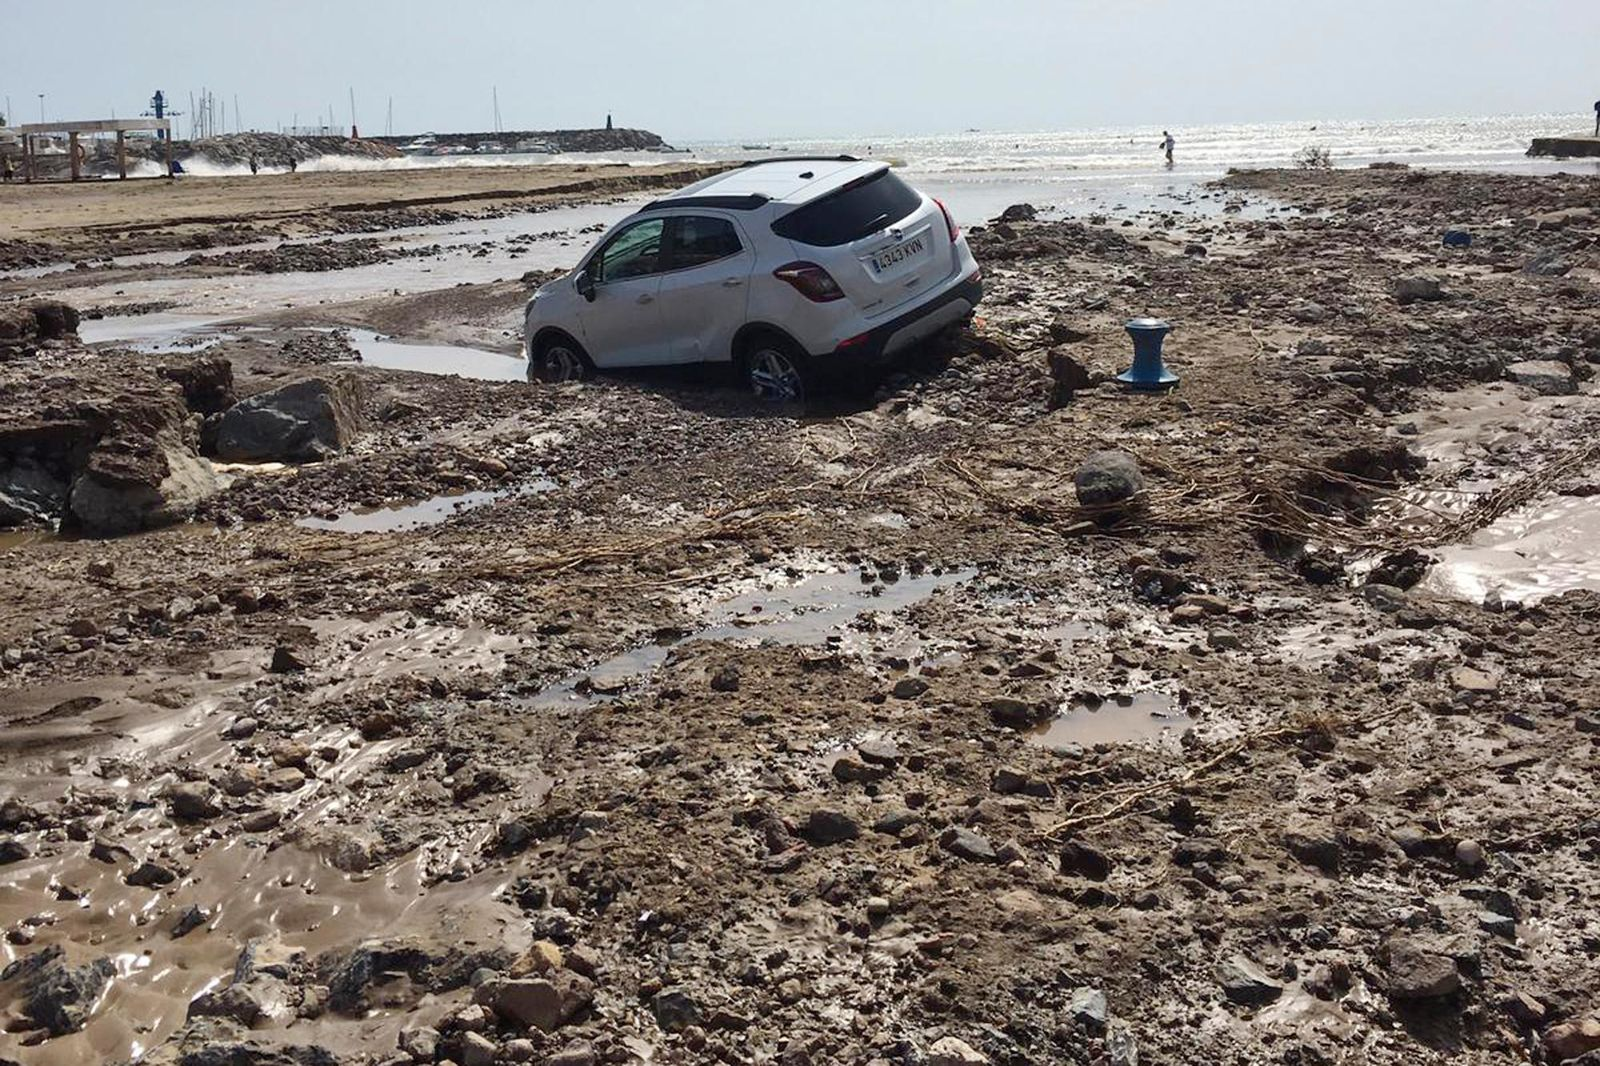 A car lies in the mud after a flood in San Jose, Almeria in south-eastern Spain, Friday Sept. 13, 2019. Spanish authorities say that heavy storms in the southeast have claimed another victim, bringing the death toll from the extremely bad weather to three. (AP Photo/Serge Carthwright)